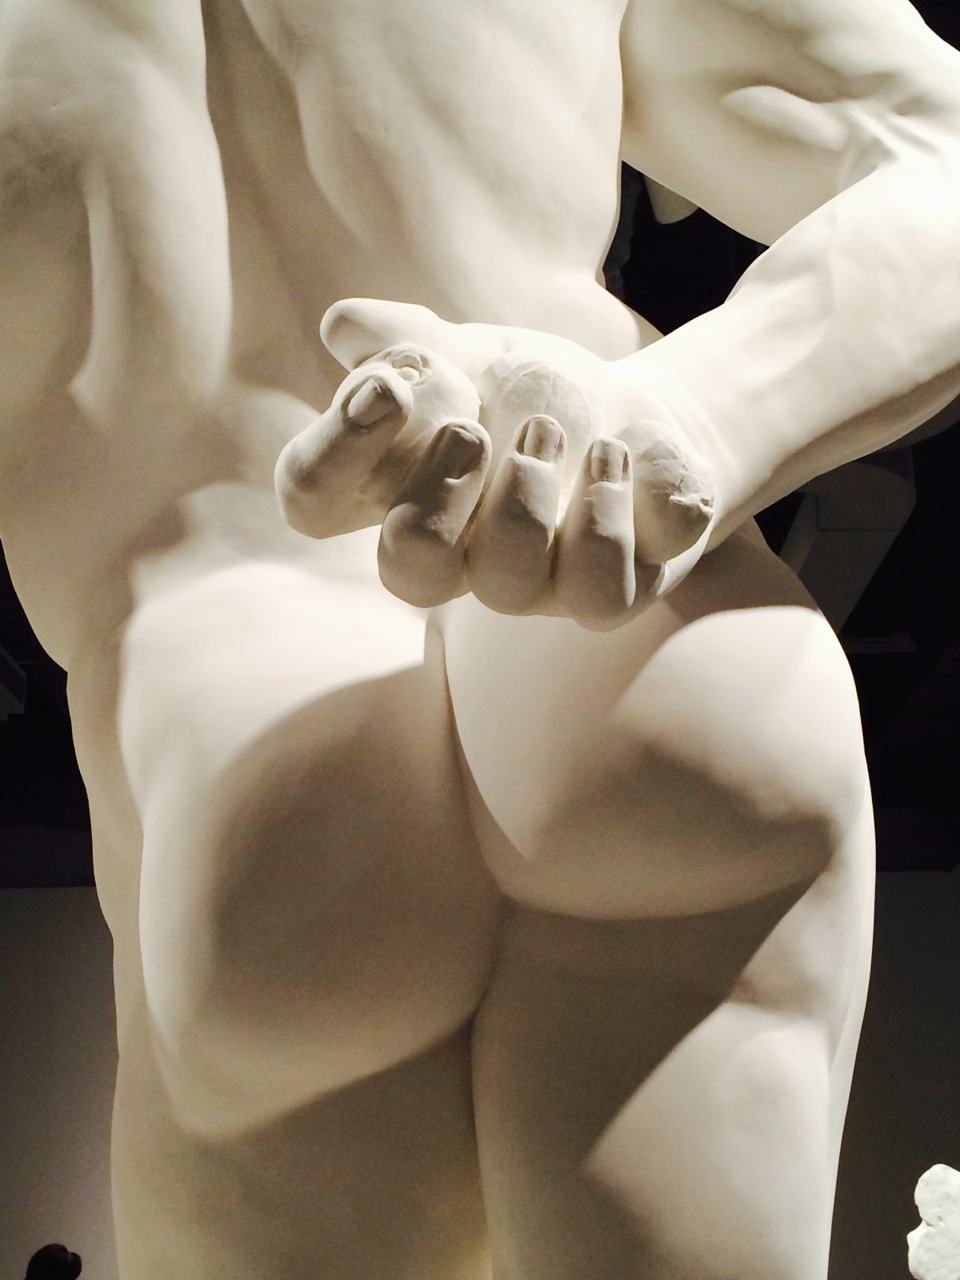 Jeff Koons Gazing Ball (Farnese Hercules) (Plaster and Glass)